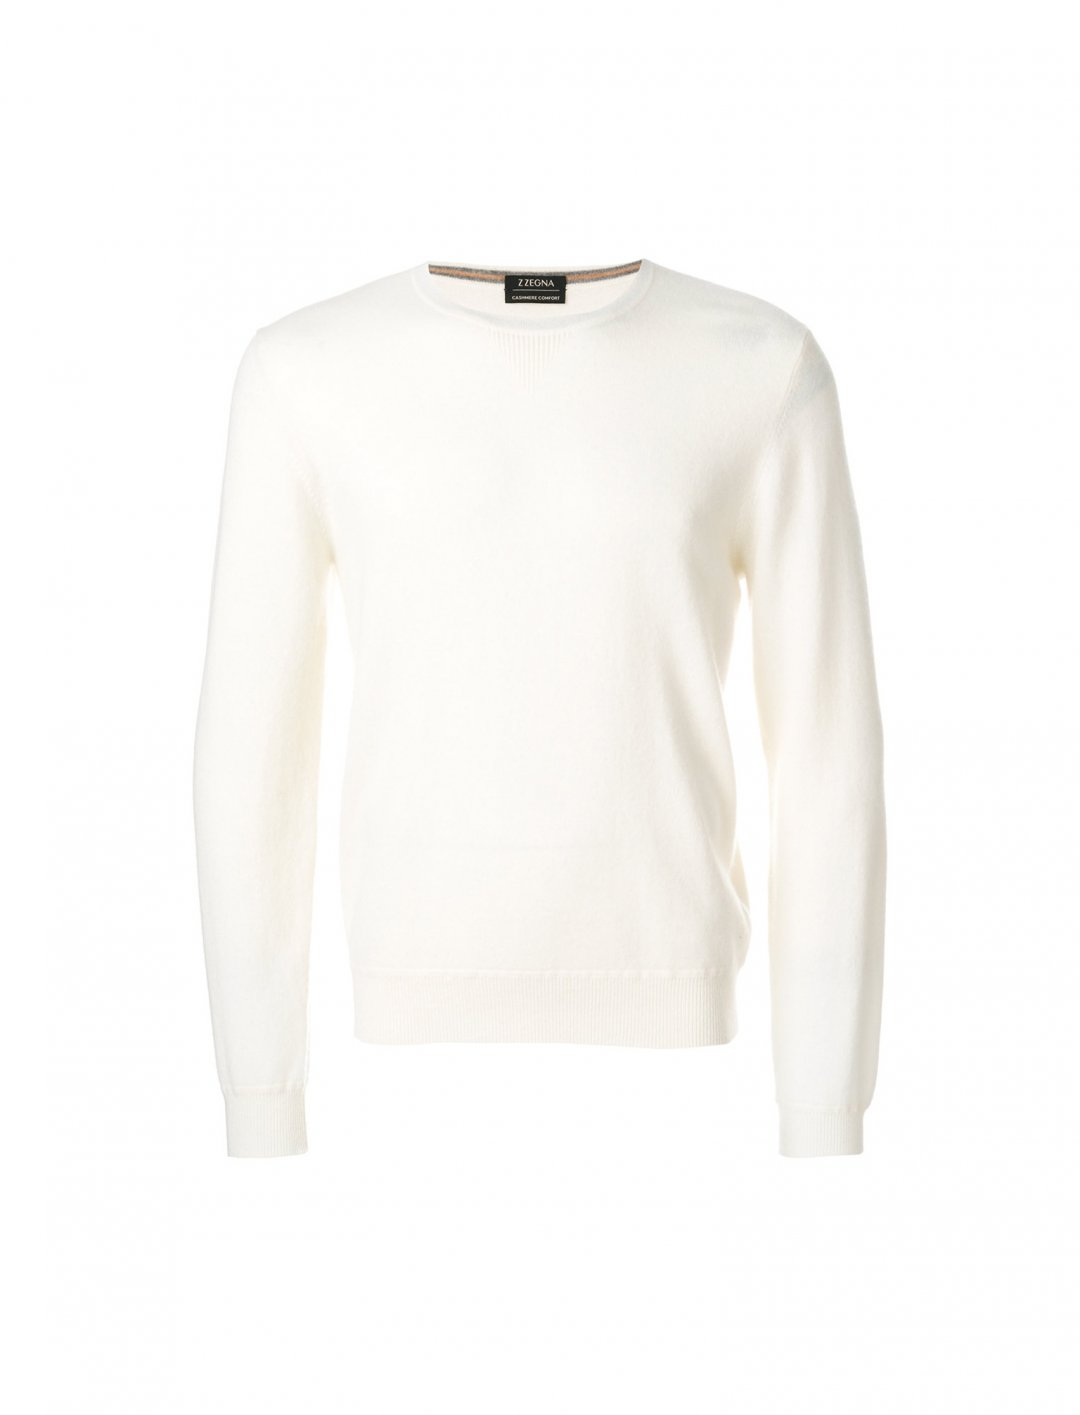 "Justin Timberlake's Crew Neck Jumper {""id"":5,""product_section_id"":1,""name"":""Clothing"",""order"":5} Z Zegna"